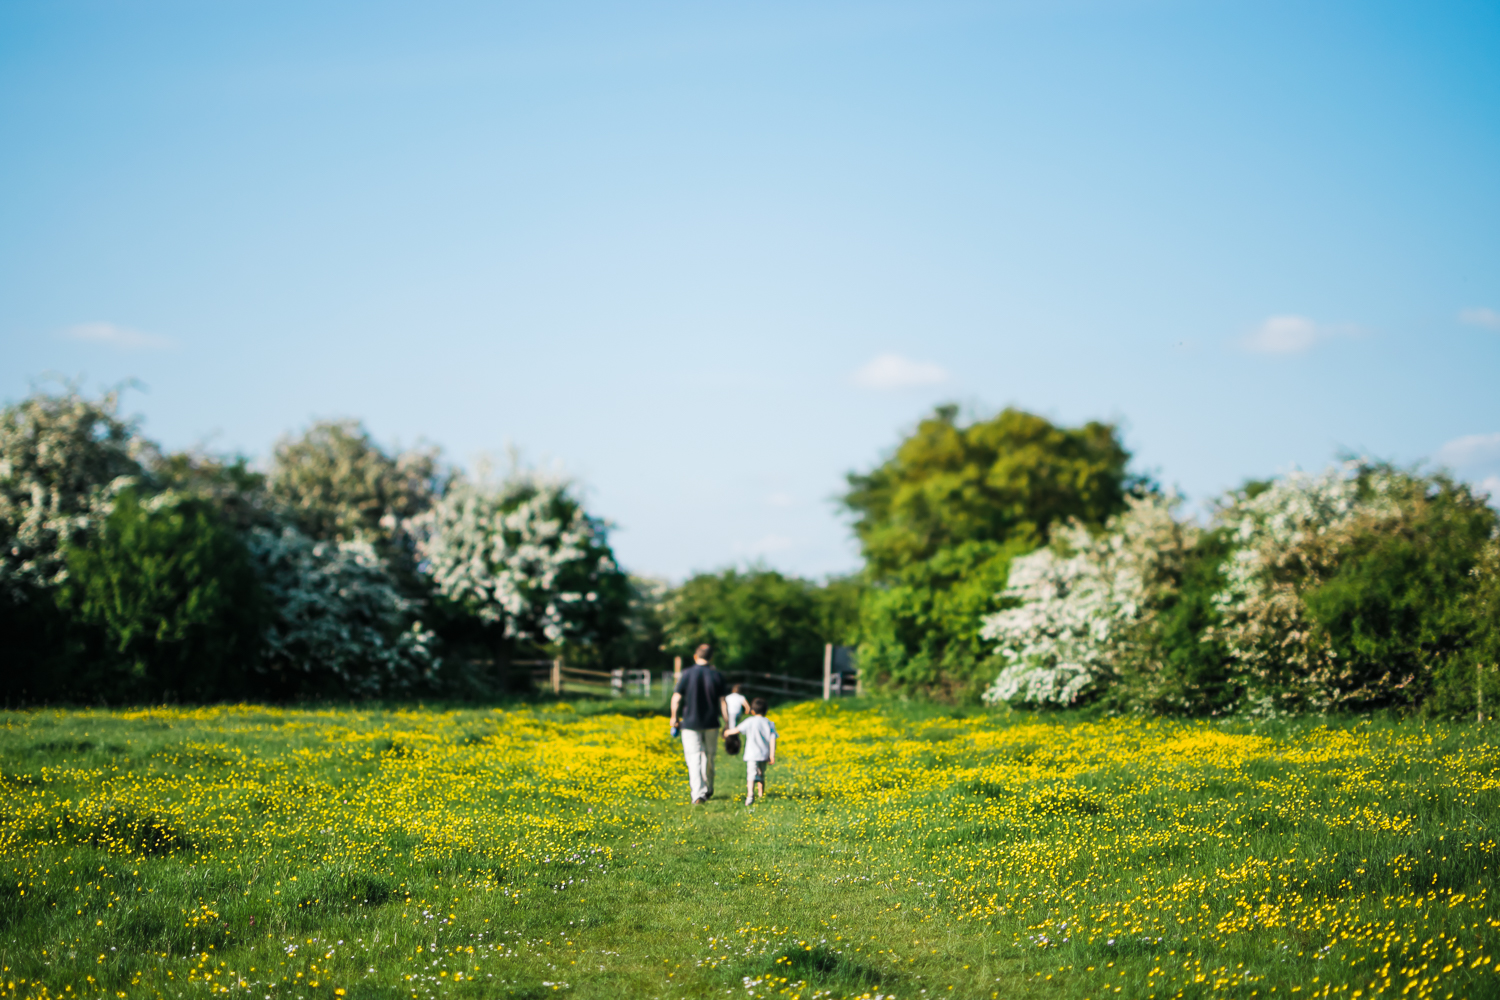 People walking in a buttercup field